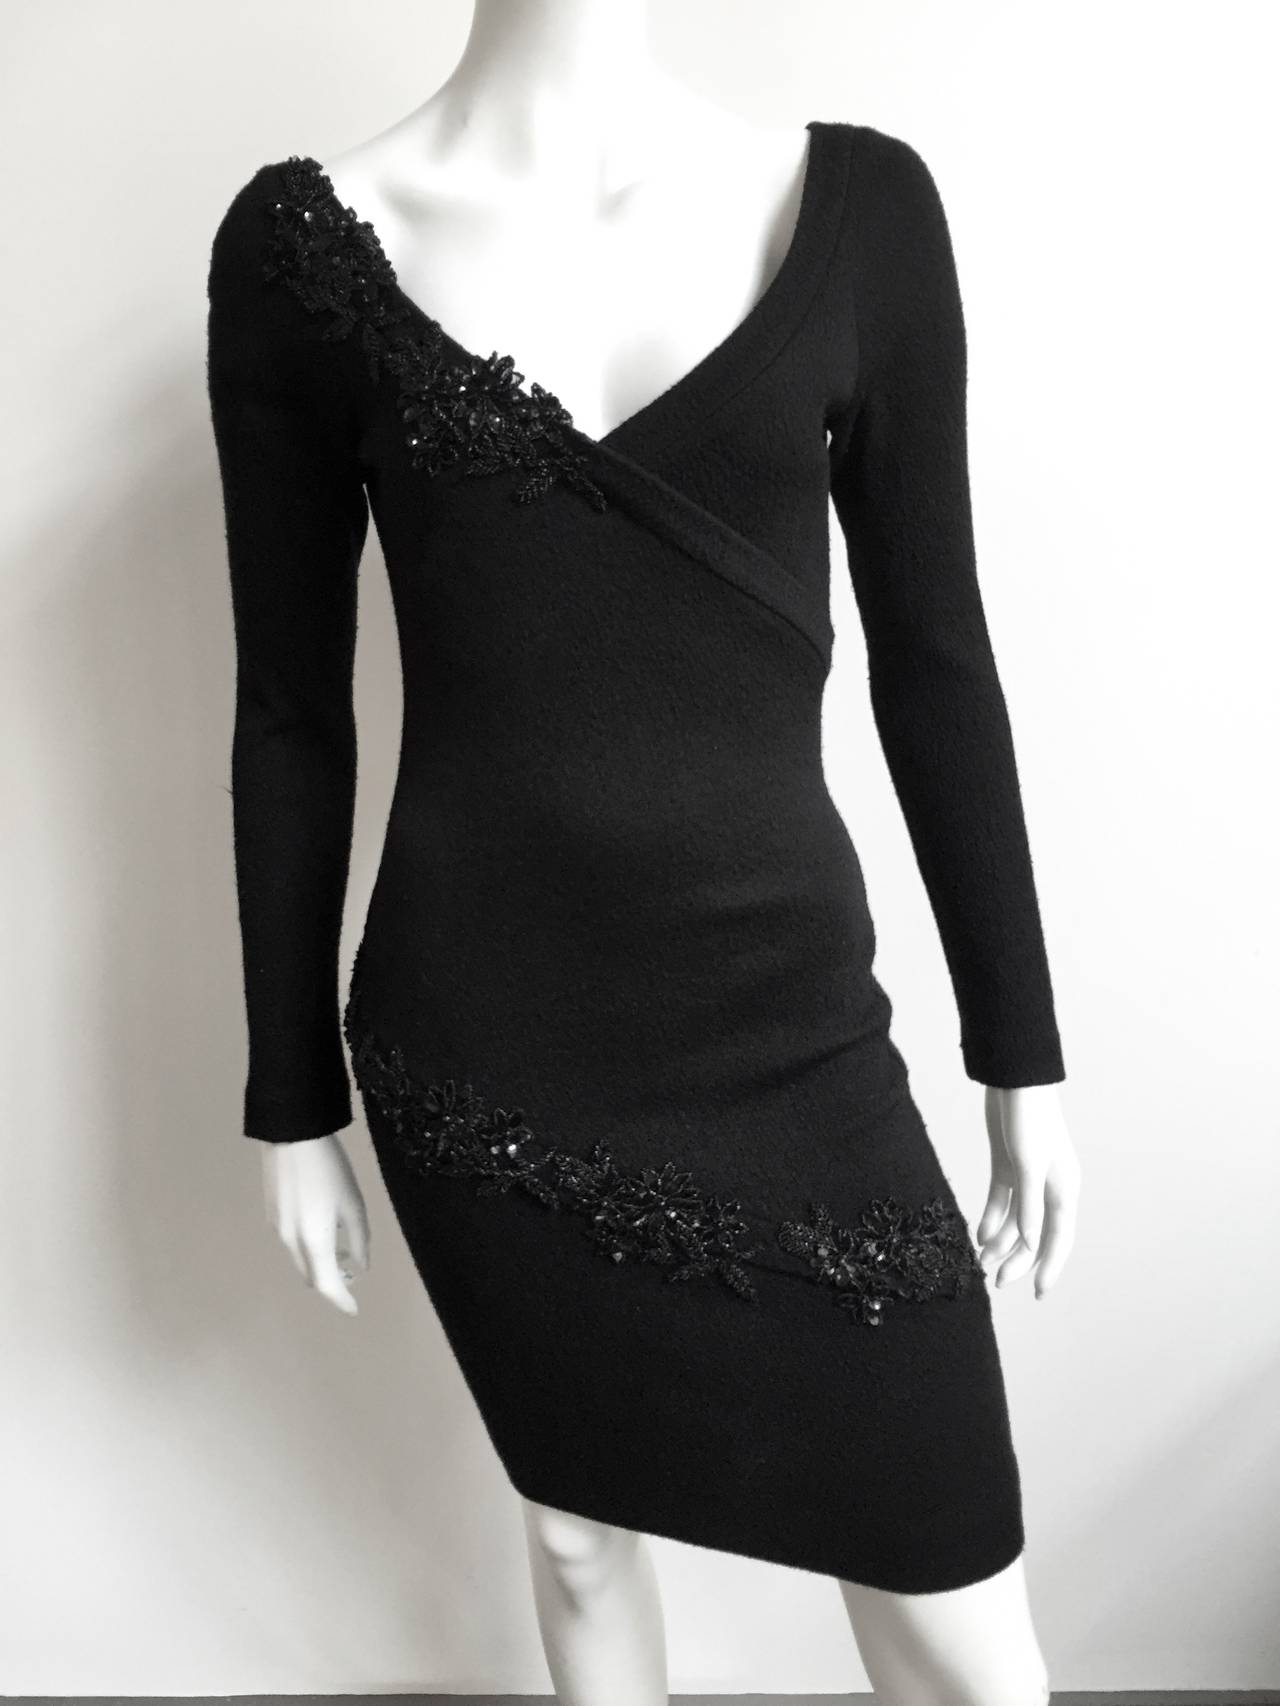 Patrick Kelly 1980s Black Evening Dress Size Small. 10